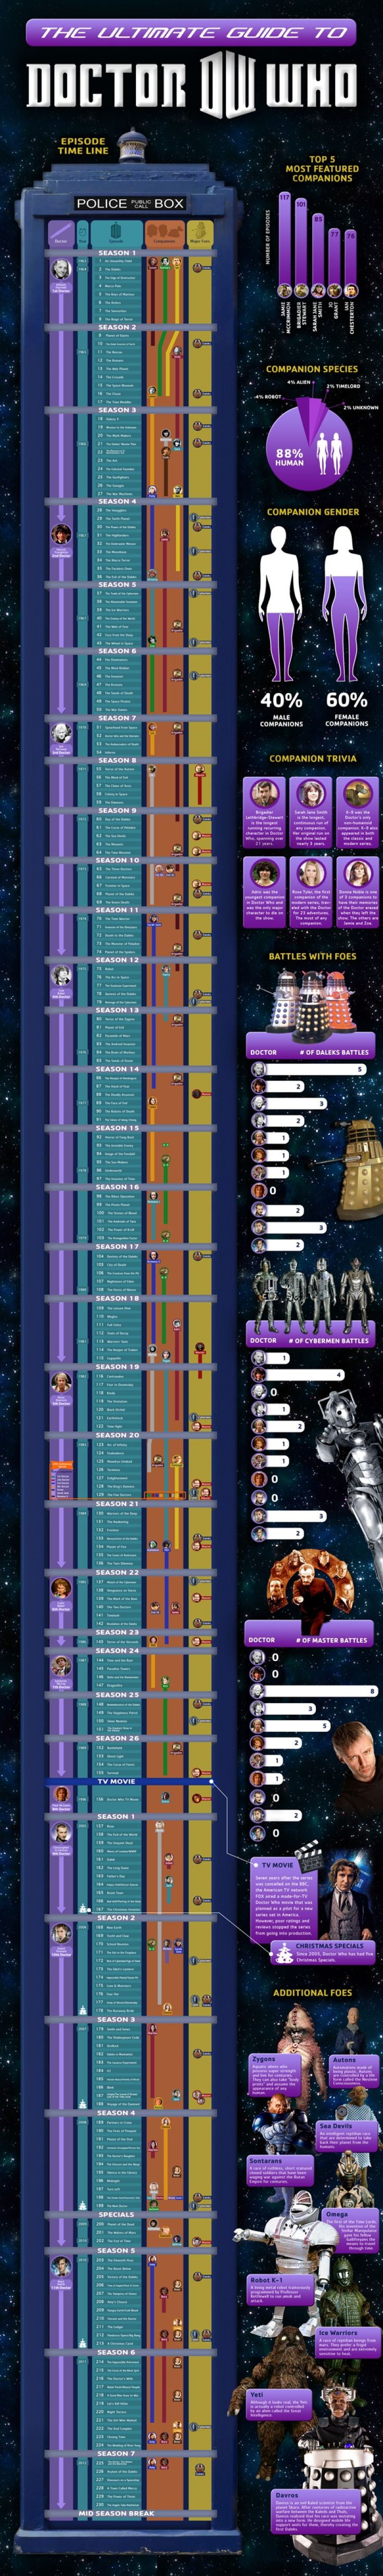 Doctor Who breakdown of doctors, companions and monsters